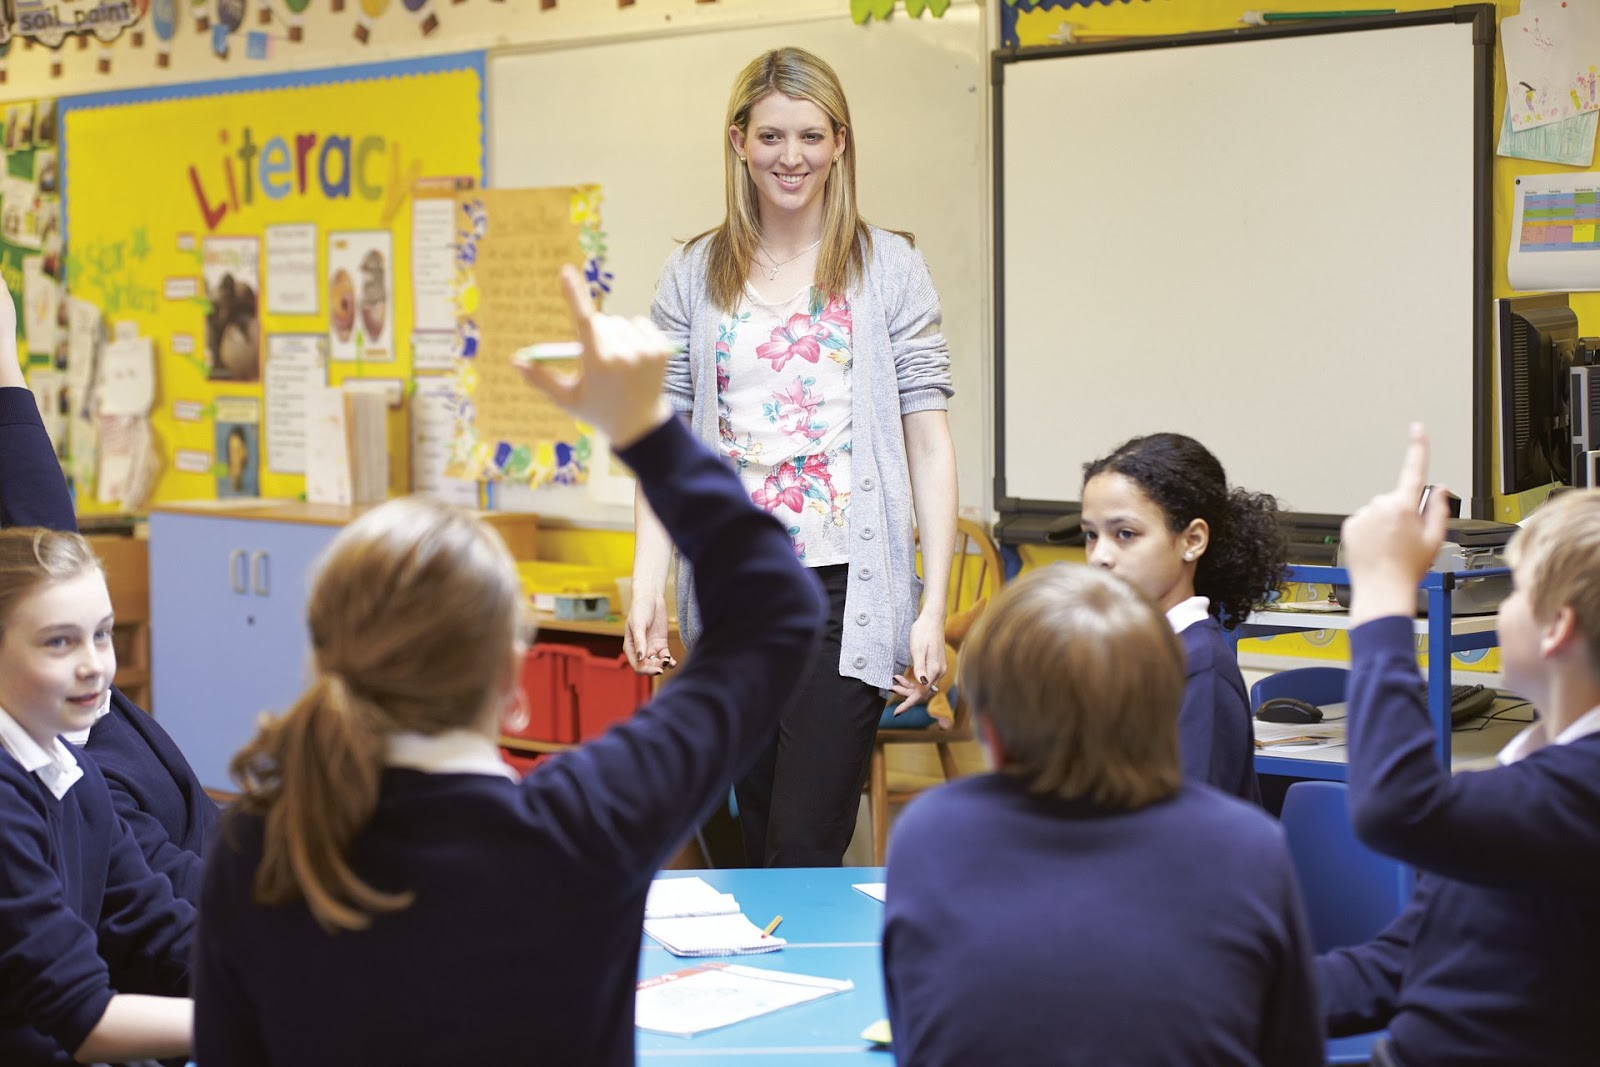 A small group of students engage in a conversation with their teacher. One hand is raised, the teacher and some of the children are smiling. There is a bulletin board in the background with the word literacy on it.